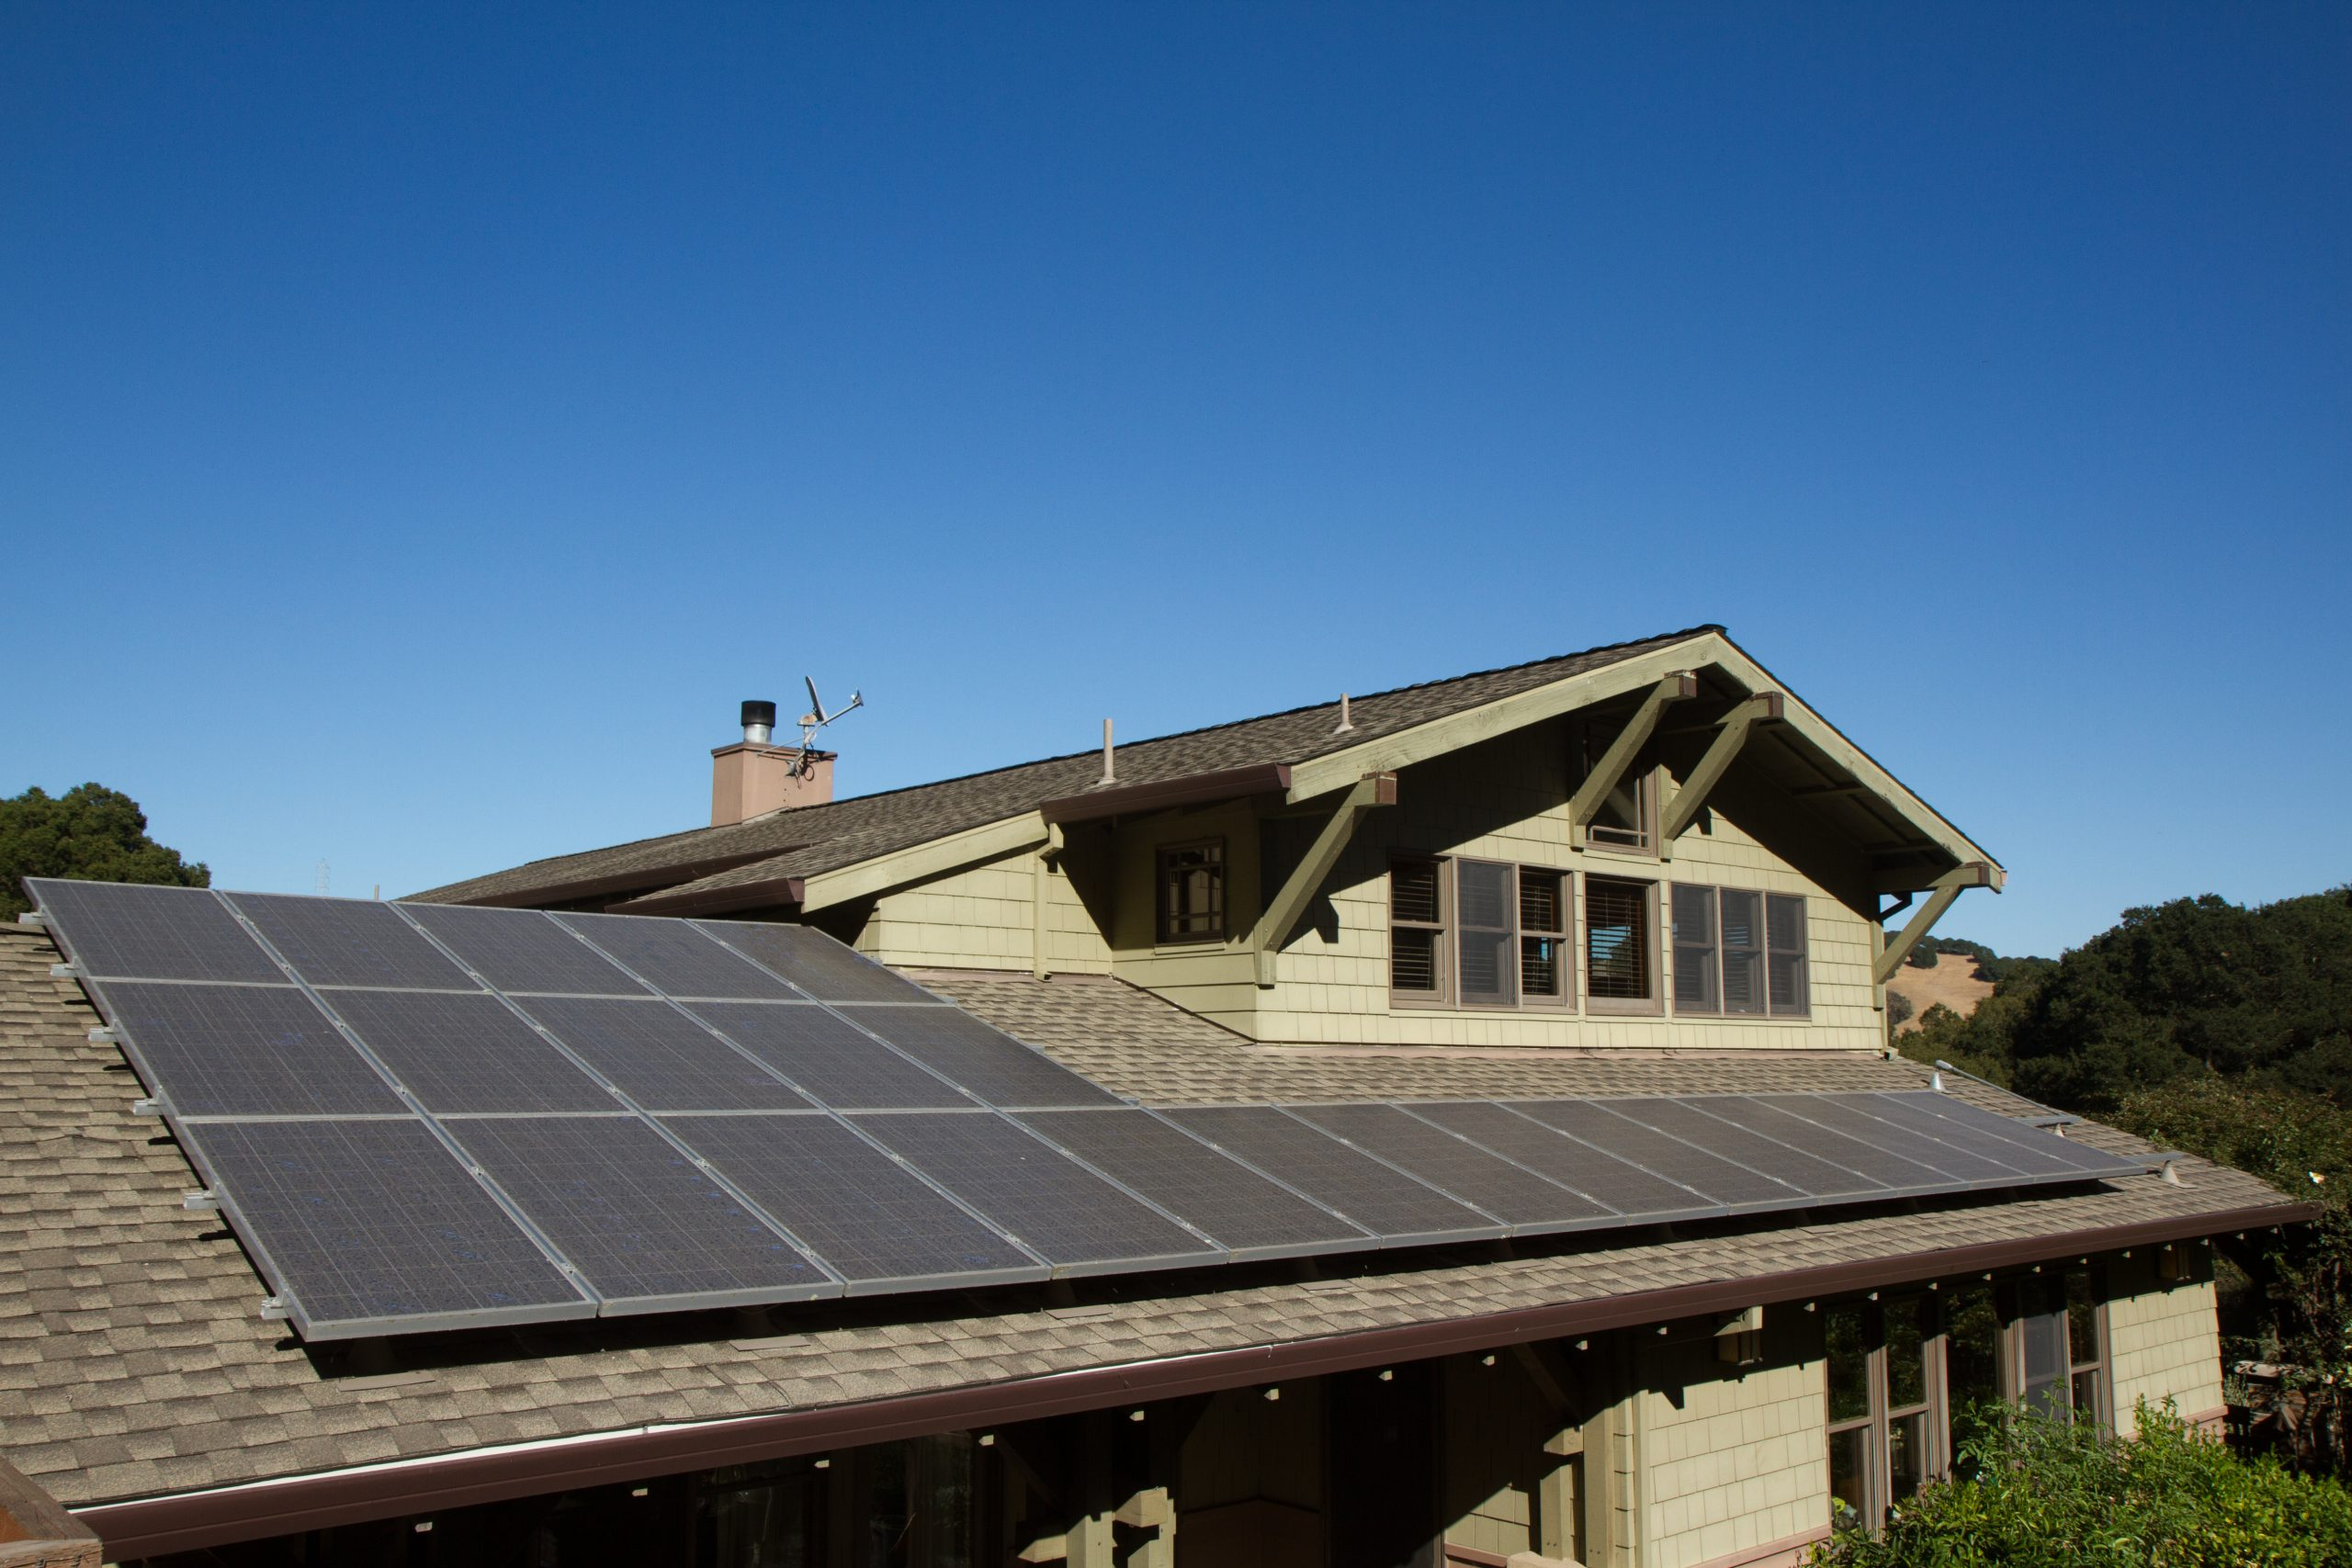 image - 5 Things to Know Before Installing Solar Panels at Home